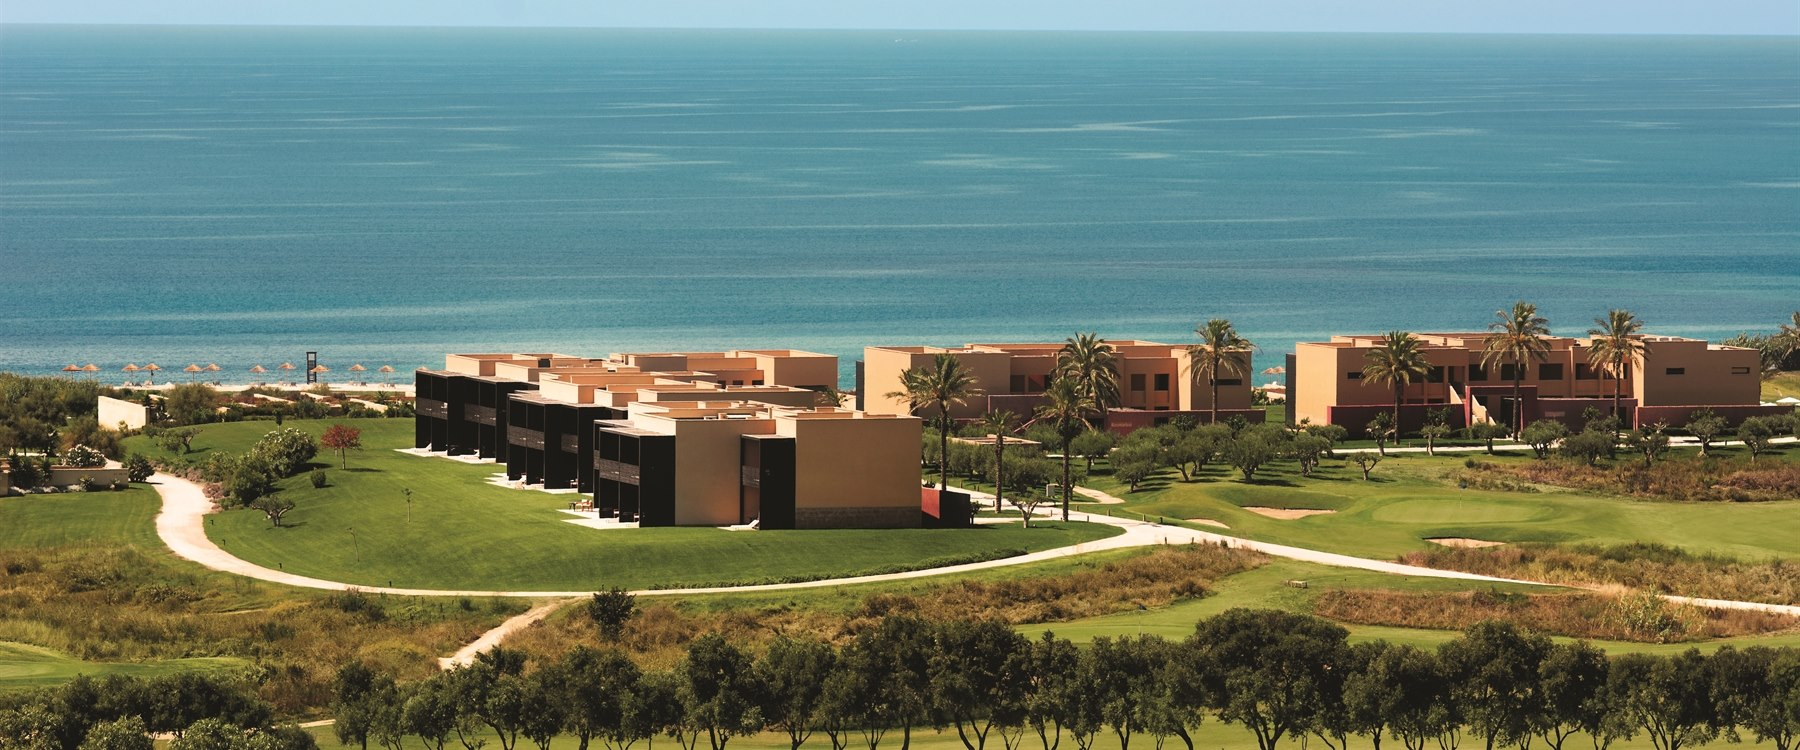 Aerial view of Verdura Resort, Sicily